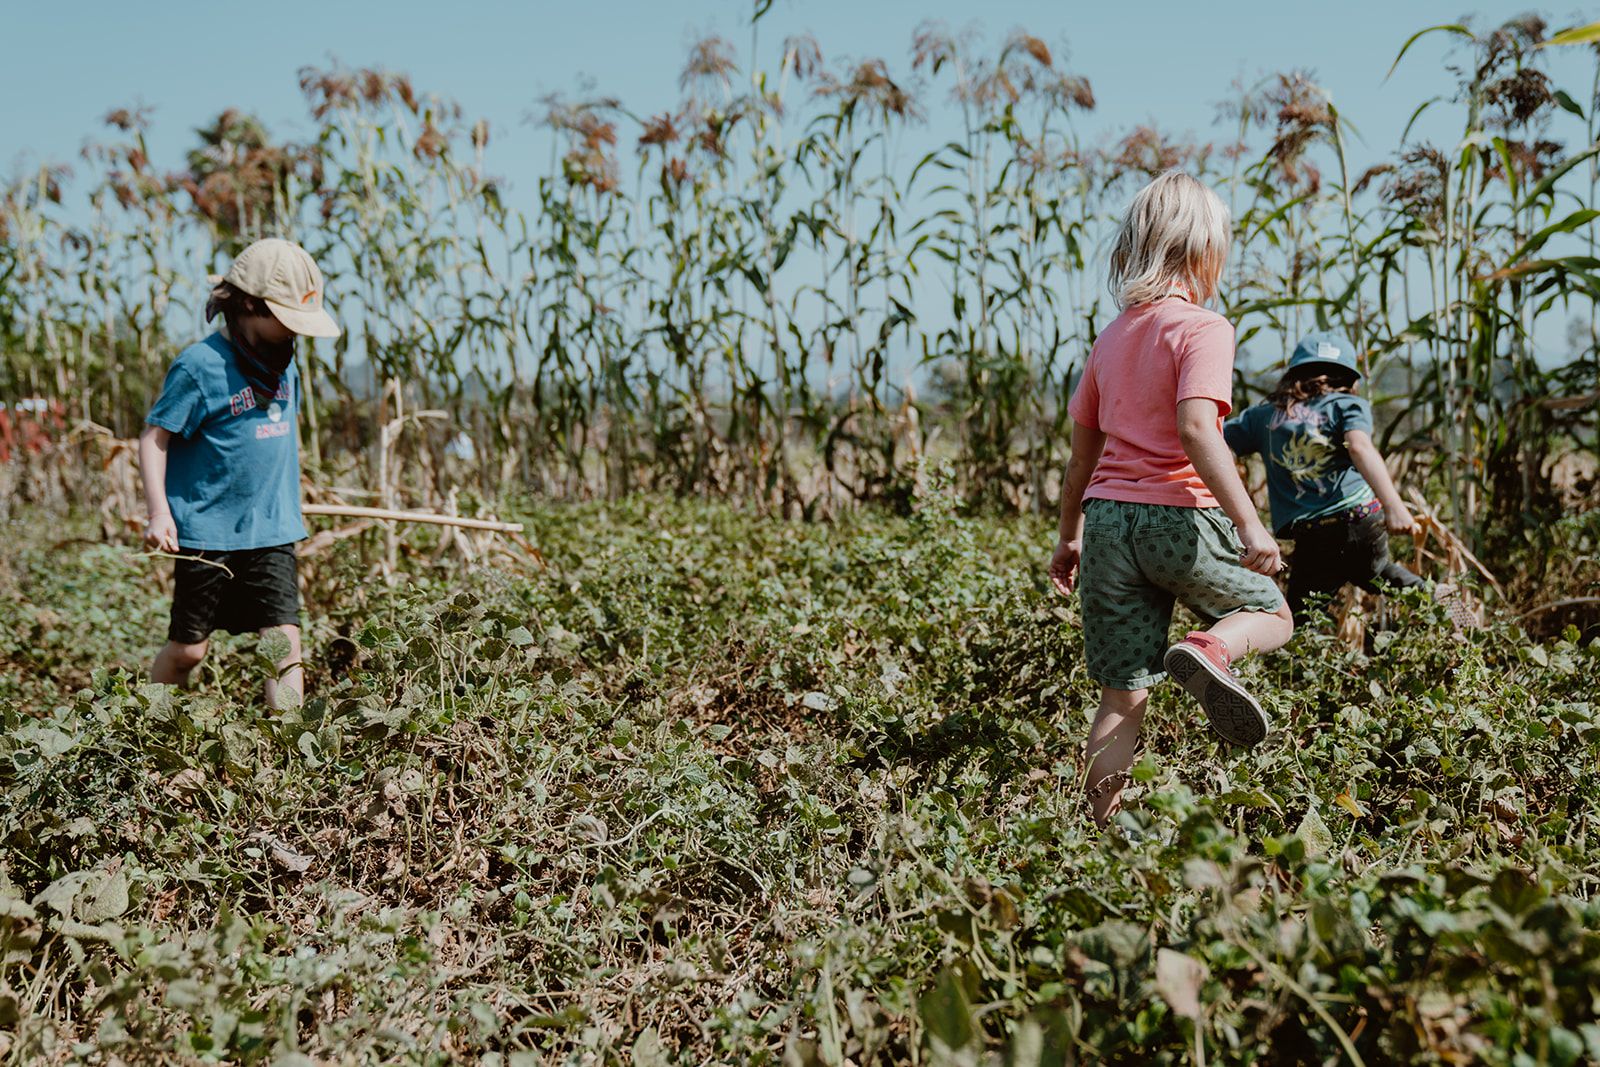 Kids playing in field